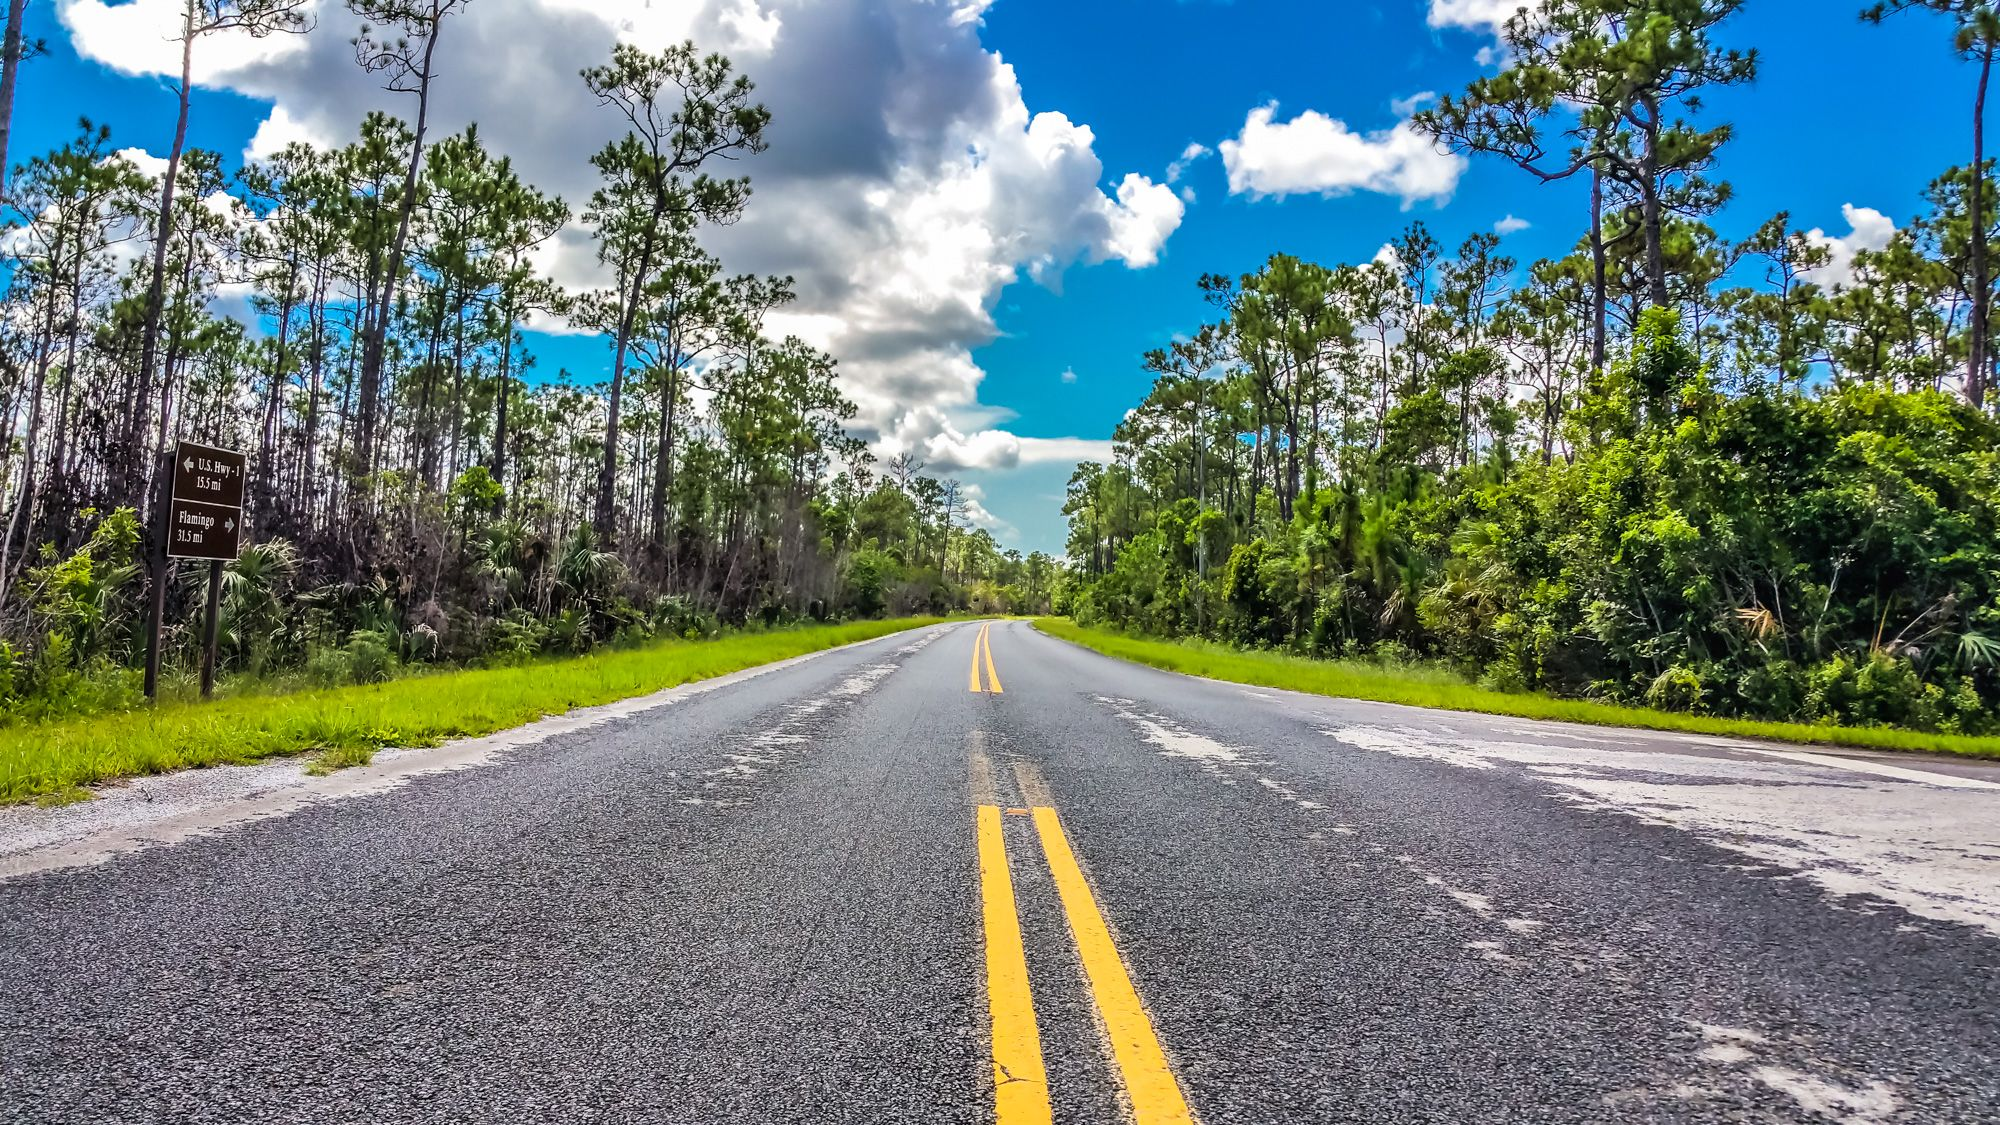 At the End of the Road – Flamingo, FL